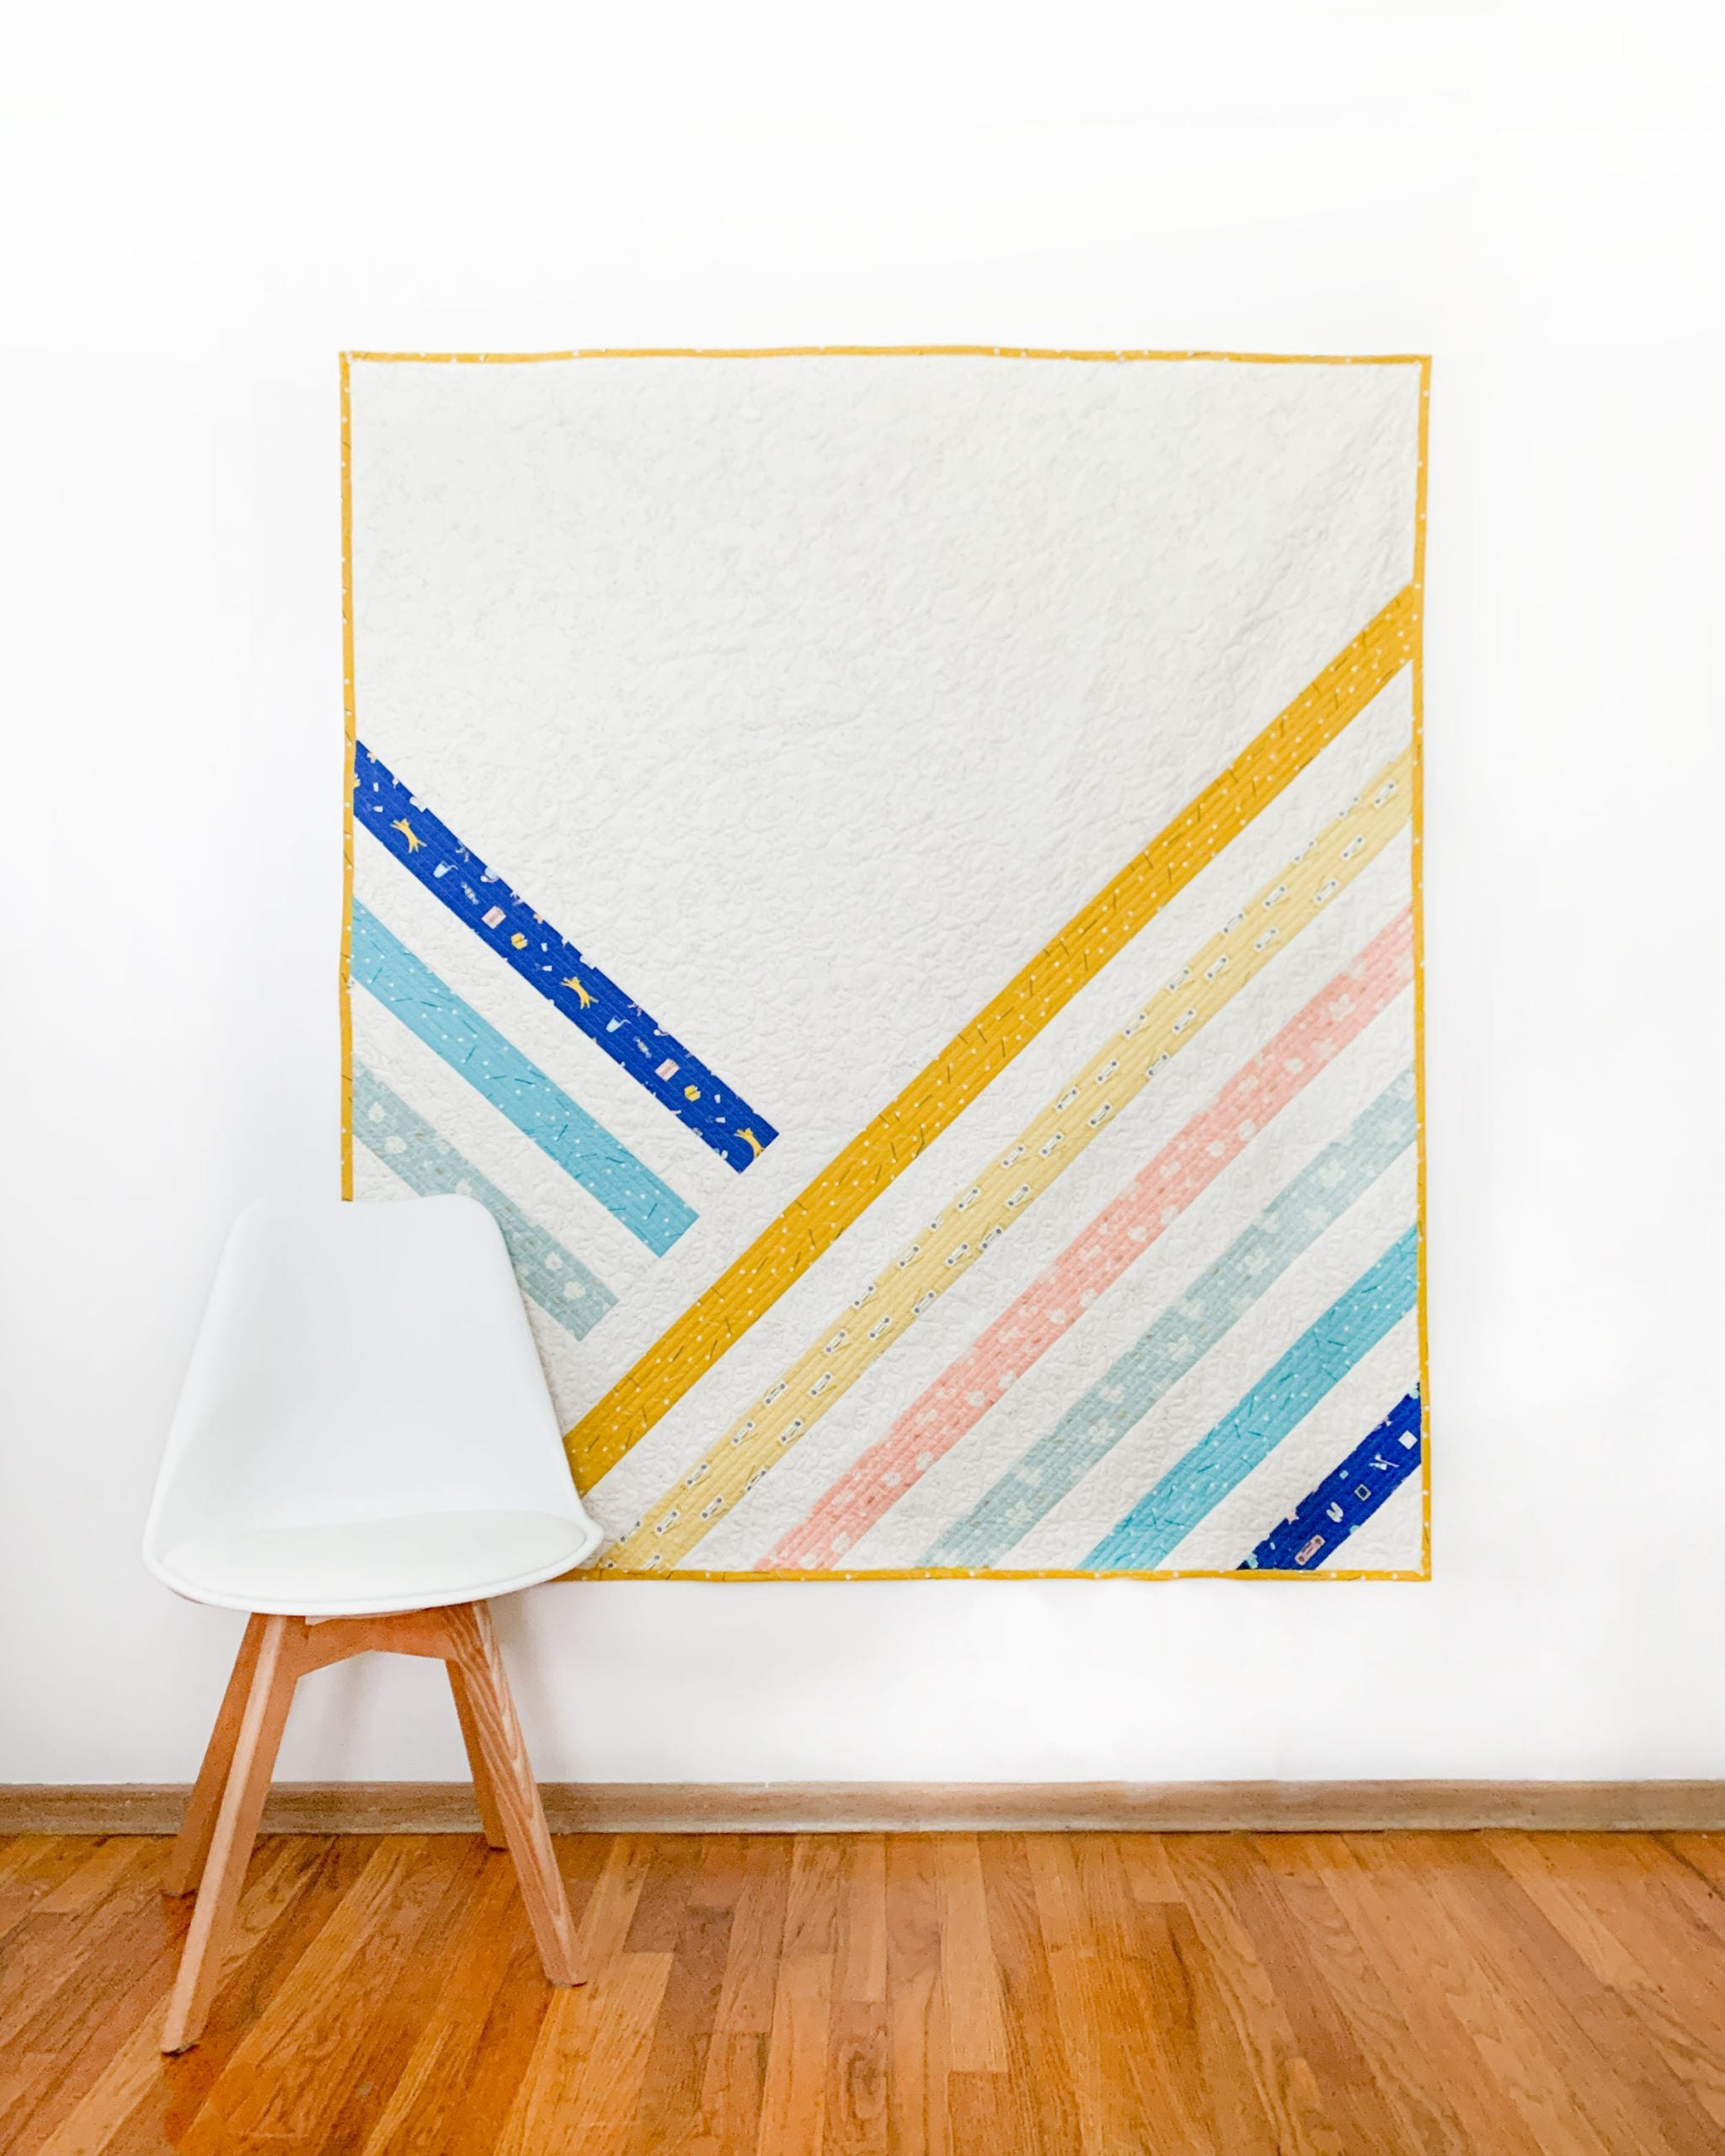 Midpoint quilt by Cotton and Joy patterns